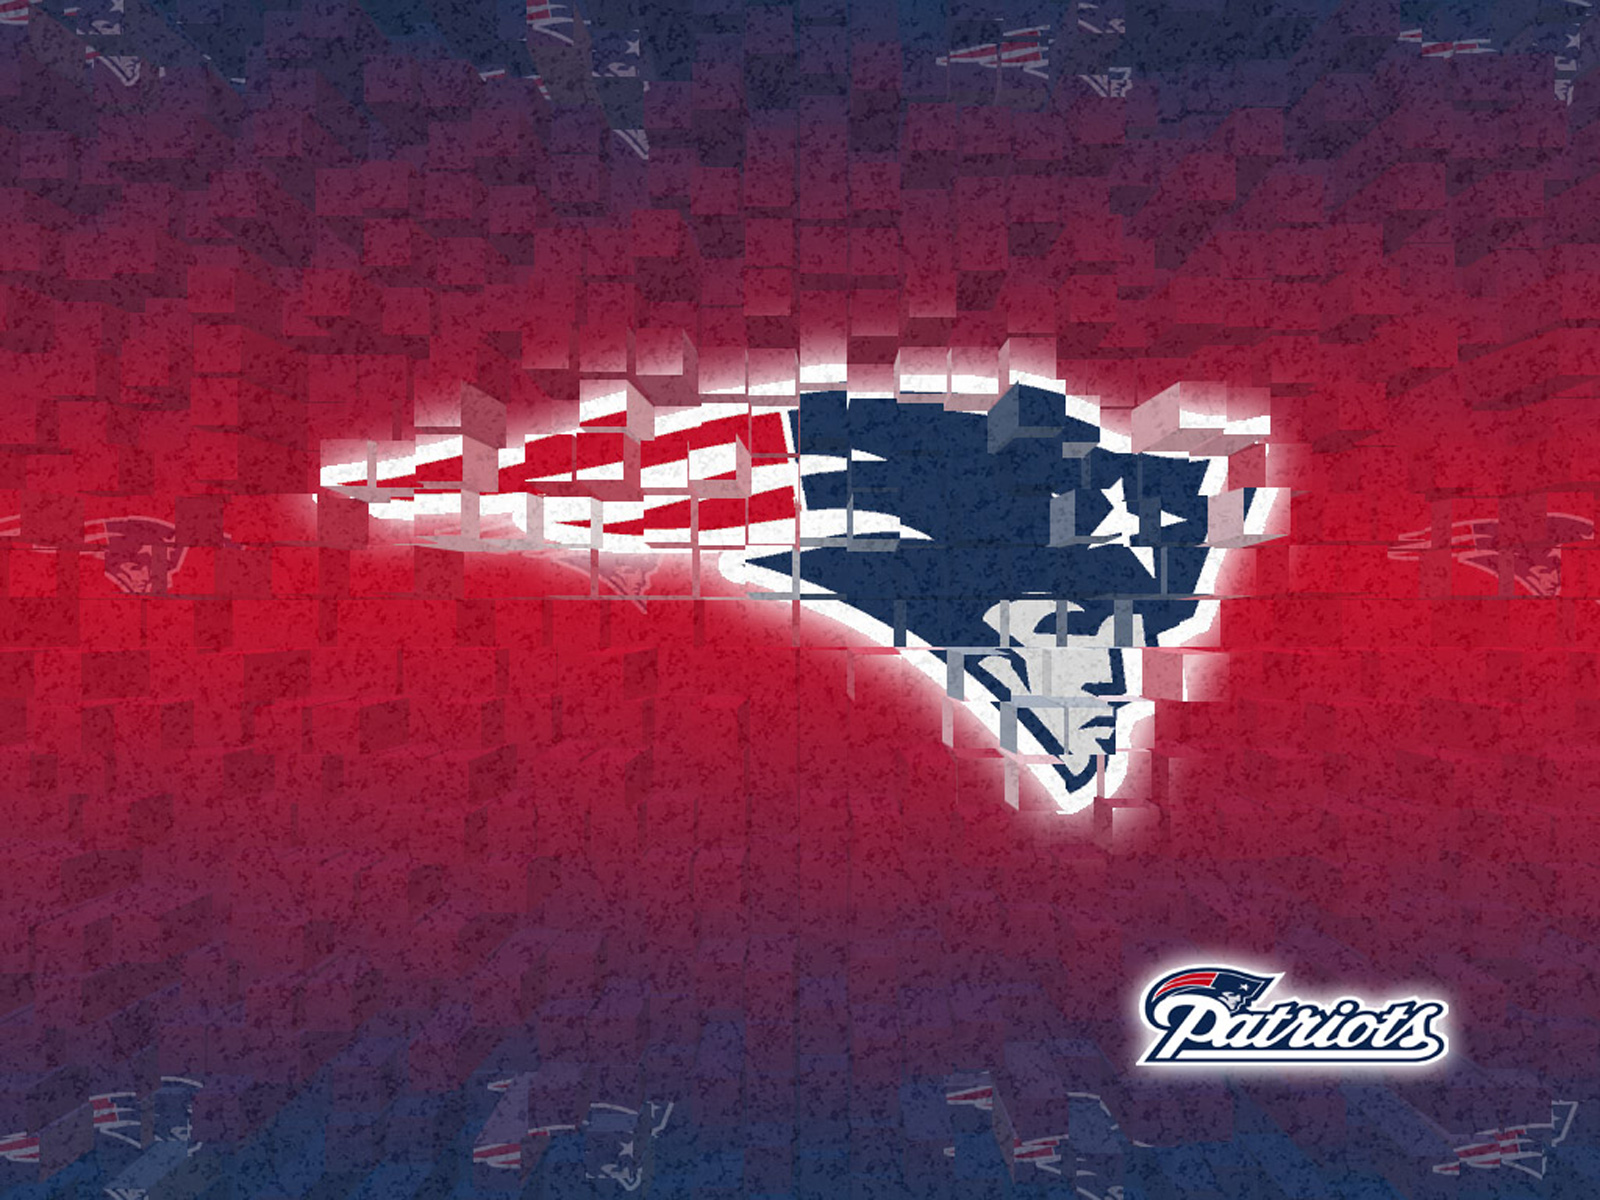 New england patriots wallpaper 5532 1600x1200 px hdwallsource new england patriots wallpaper 5532 voltagebd Gallery